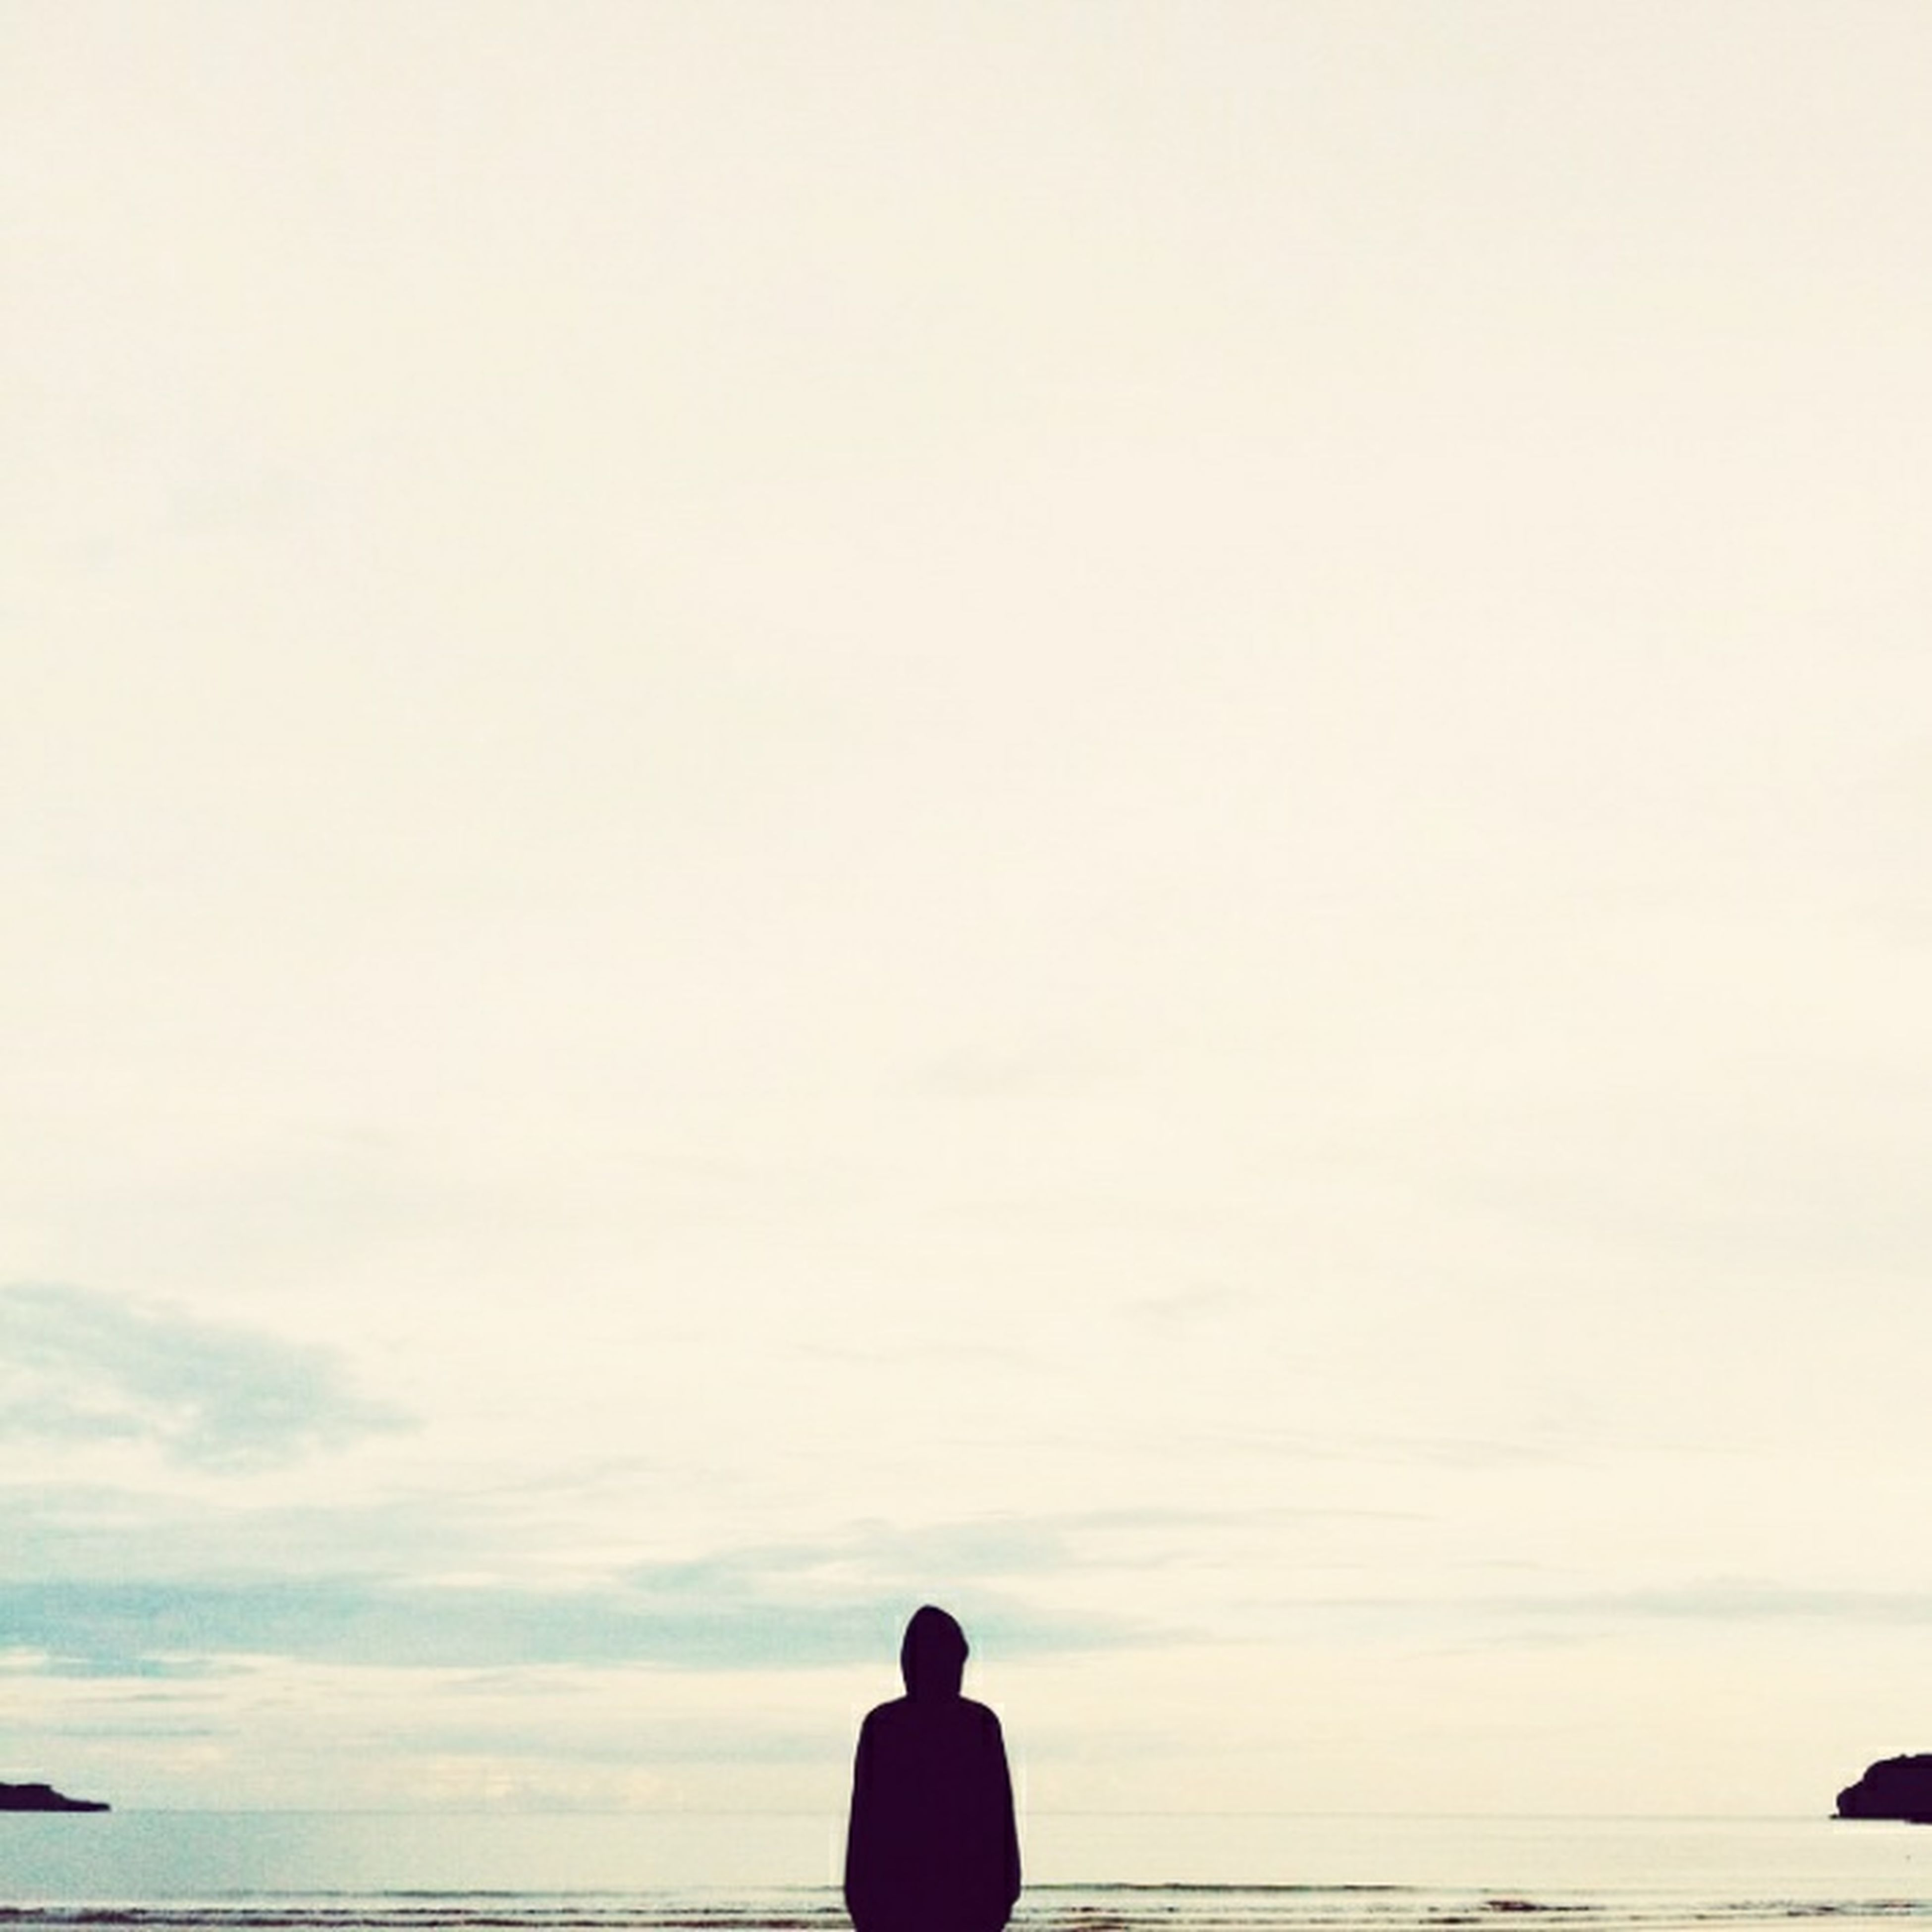 sea, standing, water, silhouette, horizon over water, rear view, lifestyles, men, sky, tranquility, leisure activity, scenics, tranquil scene, nature, beauty in nature, copy space, idyllic, beach